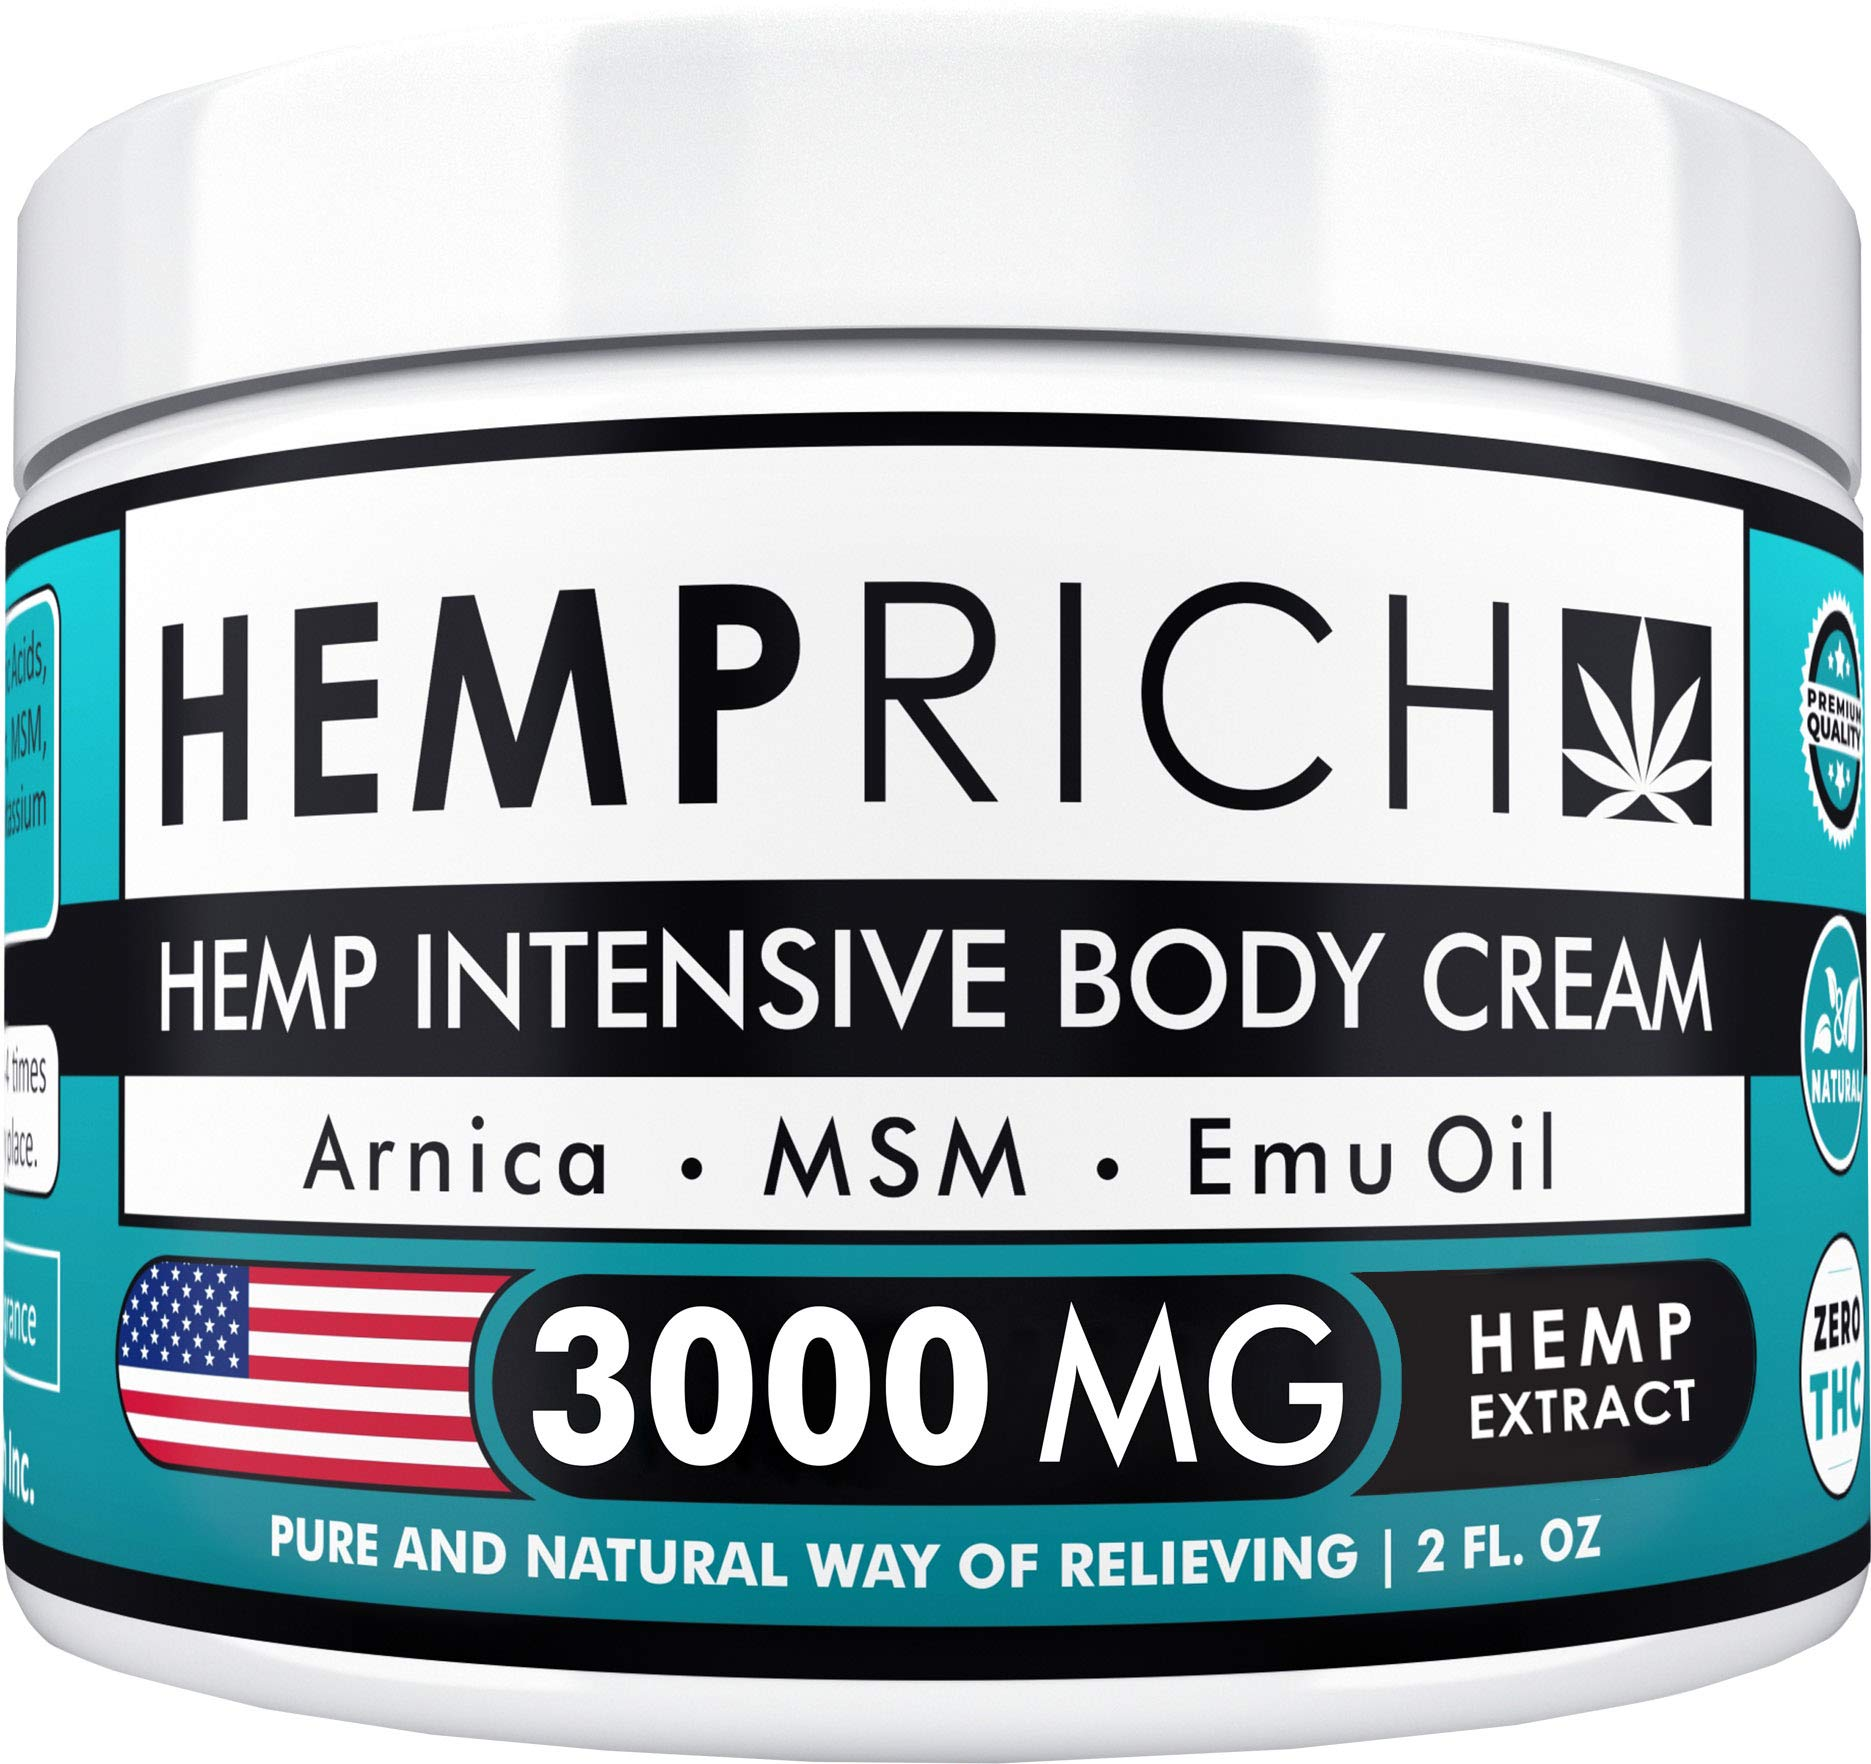 Hemp Cream - 3000 Mg - Made in USA - Back, Neck, Knee Pain Relief - Natural Hemp Oil Cream - Anti Inflammatory - Fast Sore Muscle & Joint Relief - Arnica, MSM, EMU Oil & Glucosamine - Non-GMO by Hemprich